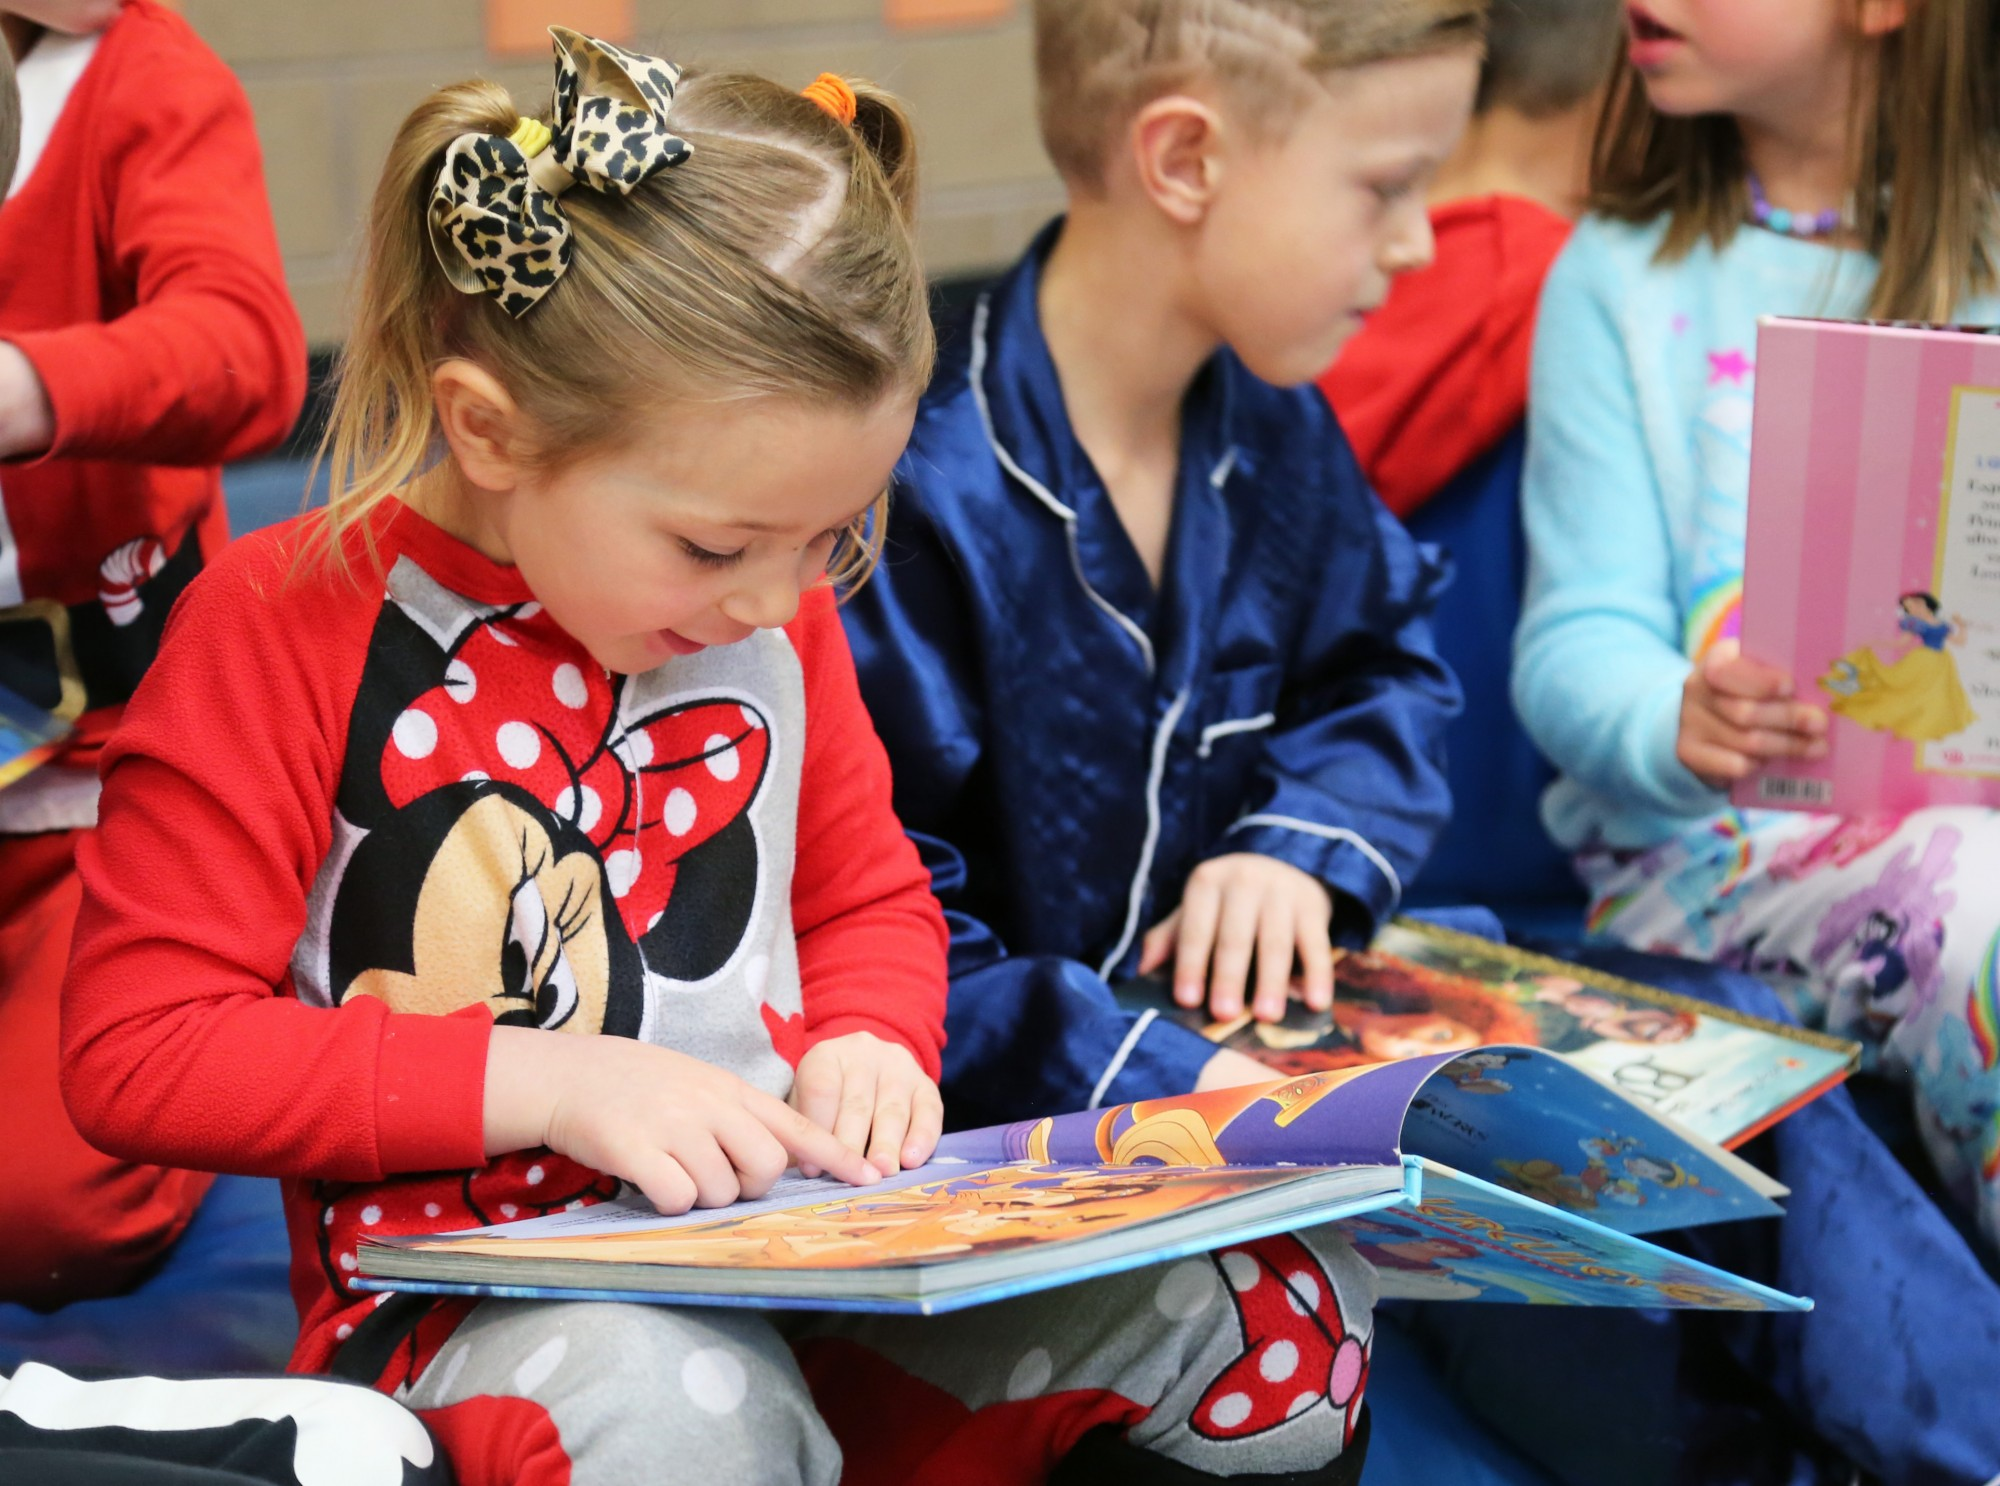 A young girls wearing Minnie Mouse pajamas smiles to herself while reading.